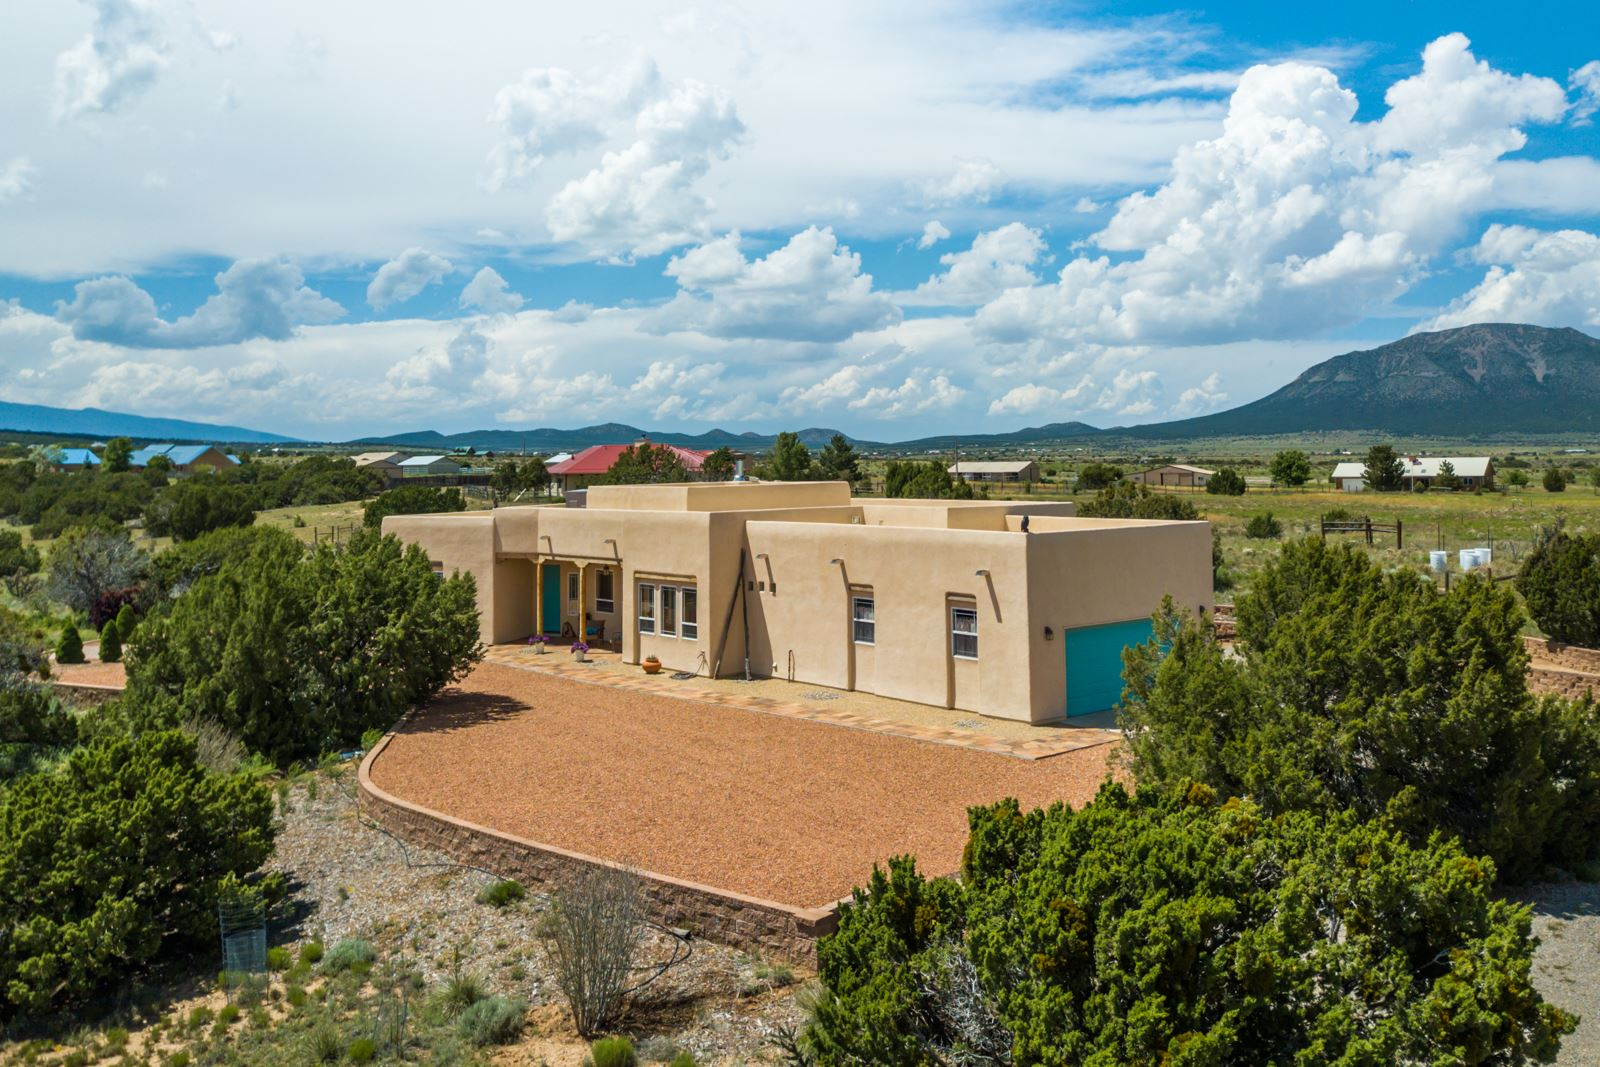 Welcome to this Stunning, Southwestern-Style, Single-Story Country Estate Nestled on 6.5 Pristine Acres in Edgewood, NM! 19 Hawkeye Road features a New TPO Roof (with Transferrable Warranty) and New Stucco on both the Main Home and the Studio/Workshop! This Home offers an Open Floor Plan, Lots of Natural Light, and Breathtaking Mountain Views for Miles! Graced by Soaring Tongue & Groove Wood Viga Ceilings and a Wood Burning Kiva Fireplace, 19 Hawkeye features an Updated Kitchen with Granite Countertops, Stainless Appliances, Island, and Breakfast Nook. Luxurious Master Suite with Double Sinks, Jetted Tub, and Separate Shower. Newer Detached Building on the Property can be an Art Studio, Workshop, or Storage Area. 4 Garage Spaces! 2-Car Garage at Main Home, 2-Car Tandem Garage at Casita! Come and see this Home today!  Other Features: Gated Entry to Property. Patio Access from Master Suite and Living Area. Entranosa Community Water! Generac 15kw Generator Included! All Appliances Included! Easy Access to Freeway! Close to the new Estancia Valley Classical Academy Public Charter School!